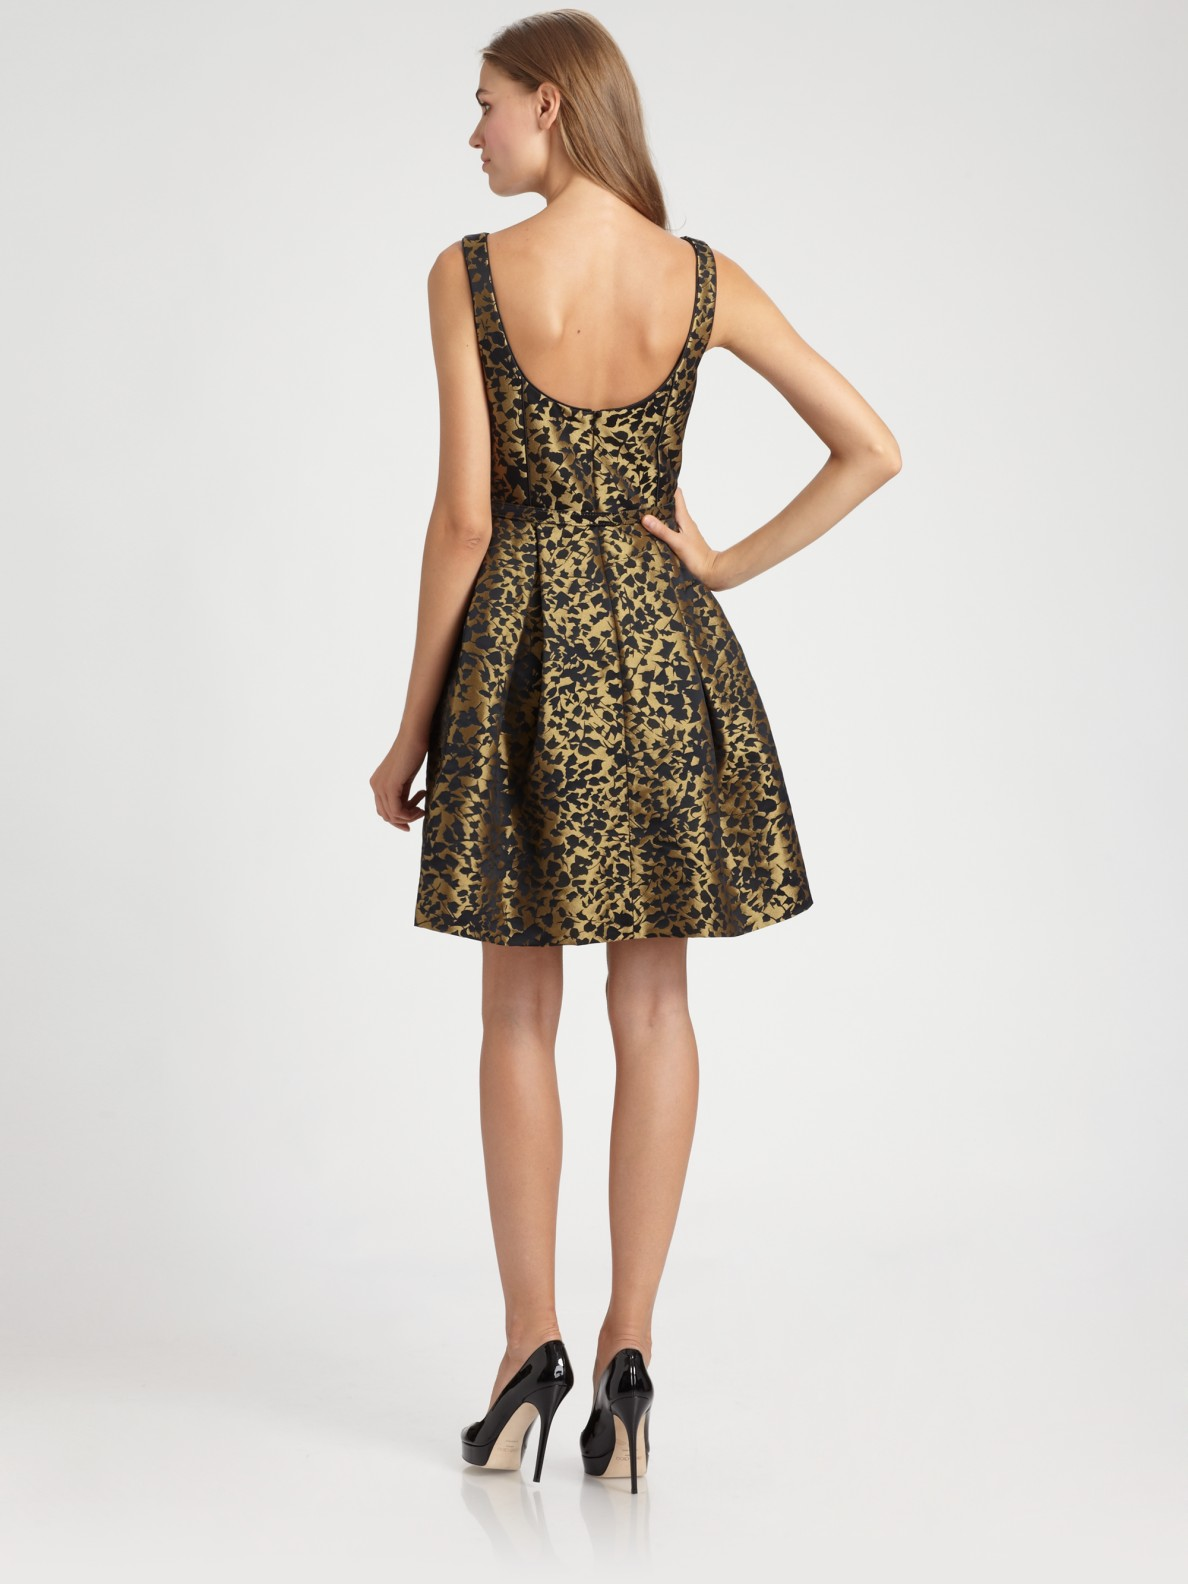 Mccartney Stella Saks Dress